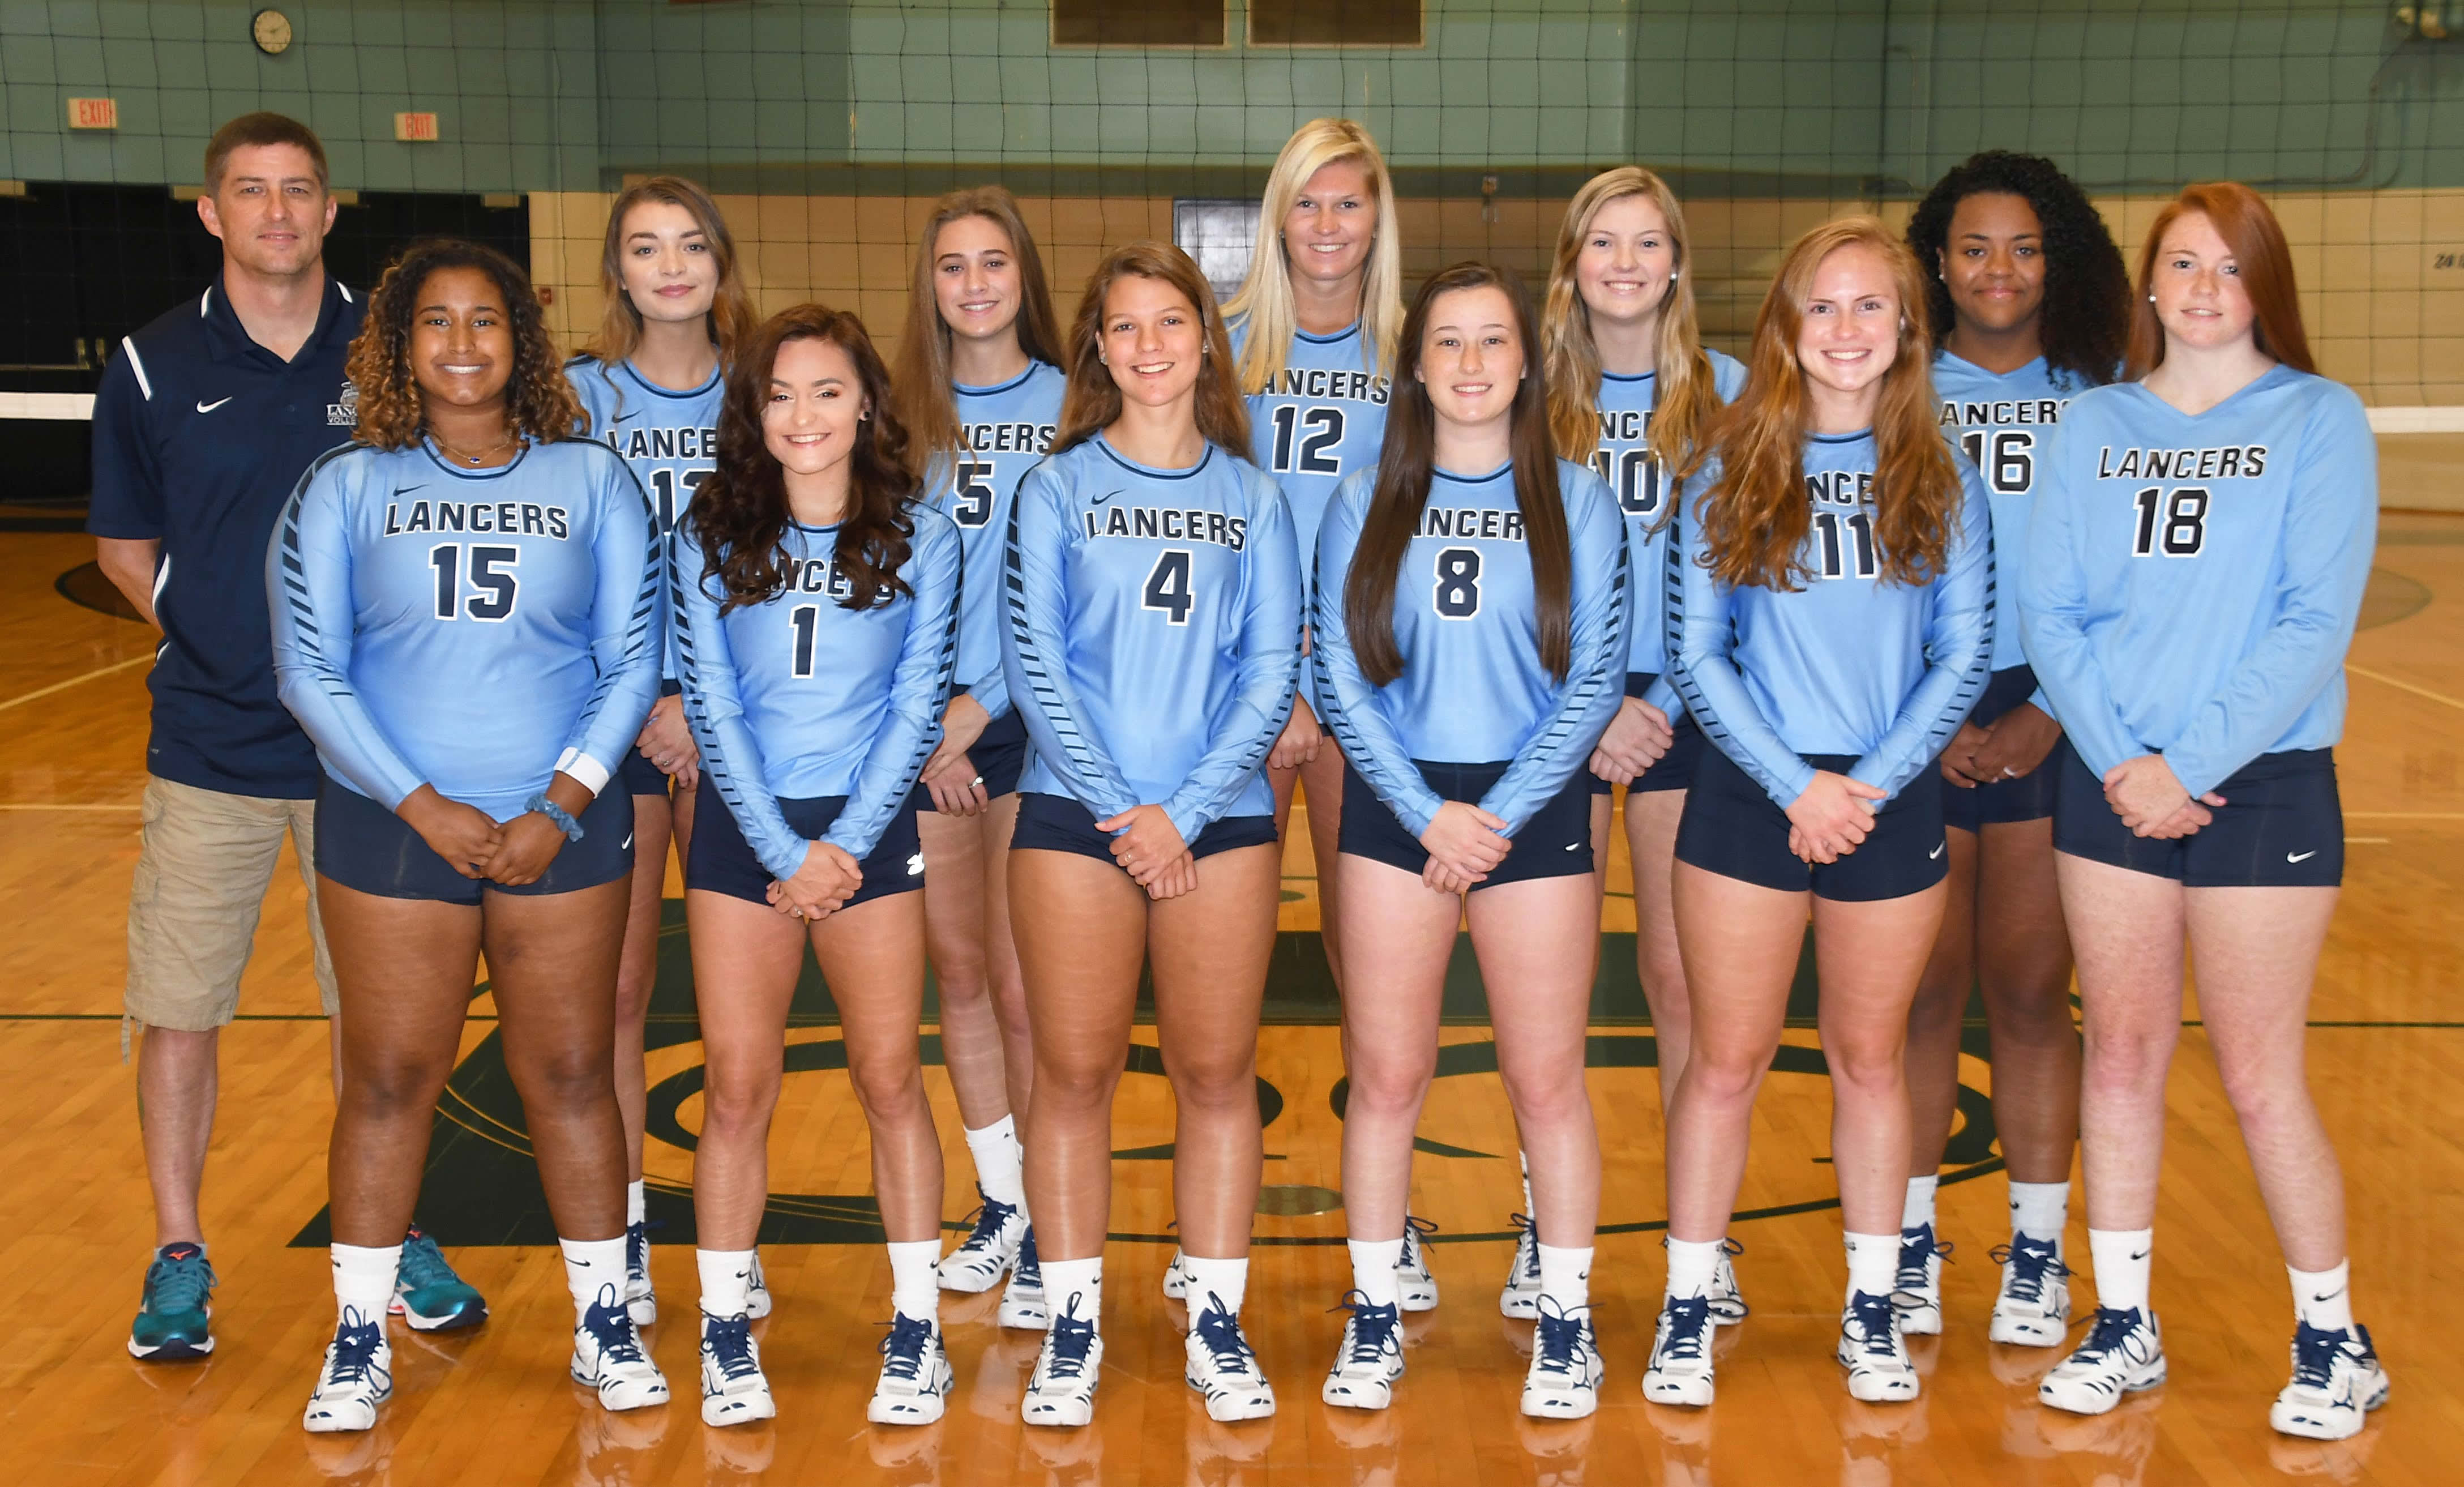 2018 Lancers Volleyball Team